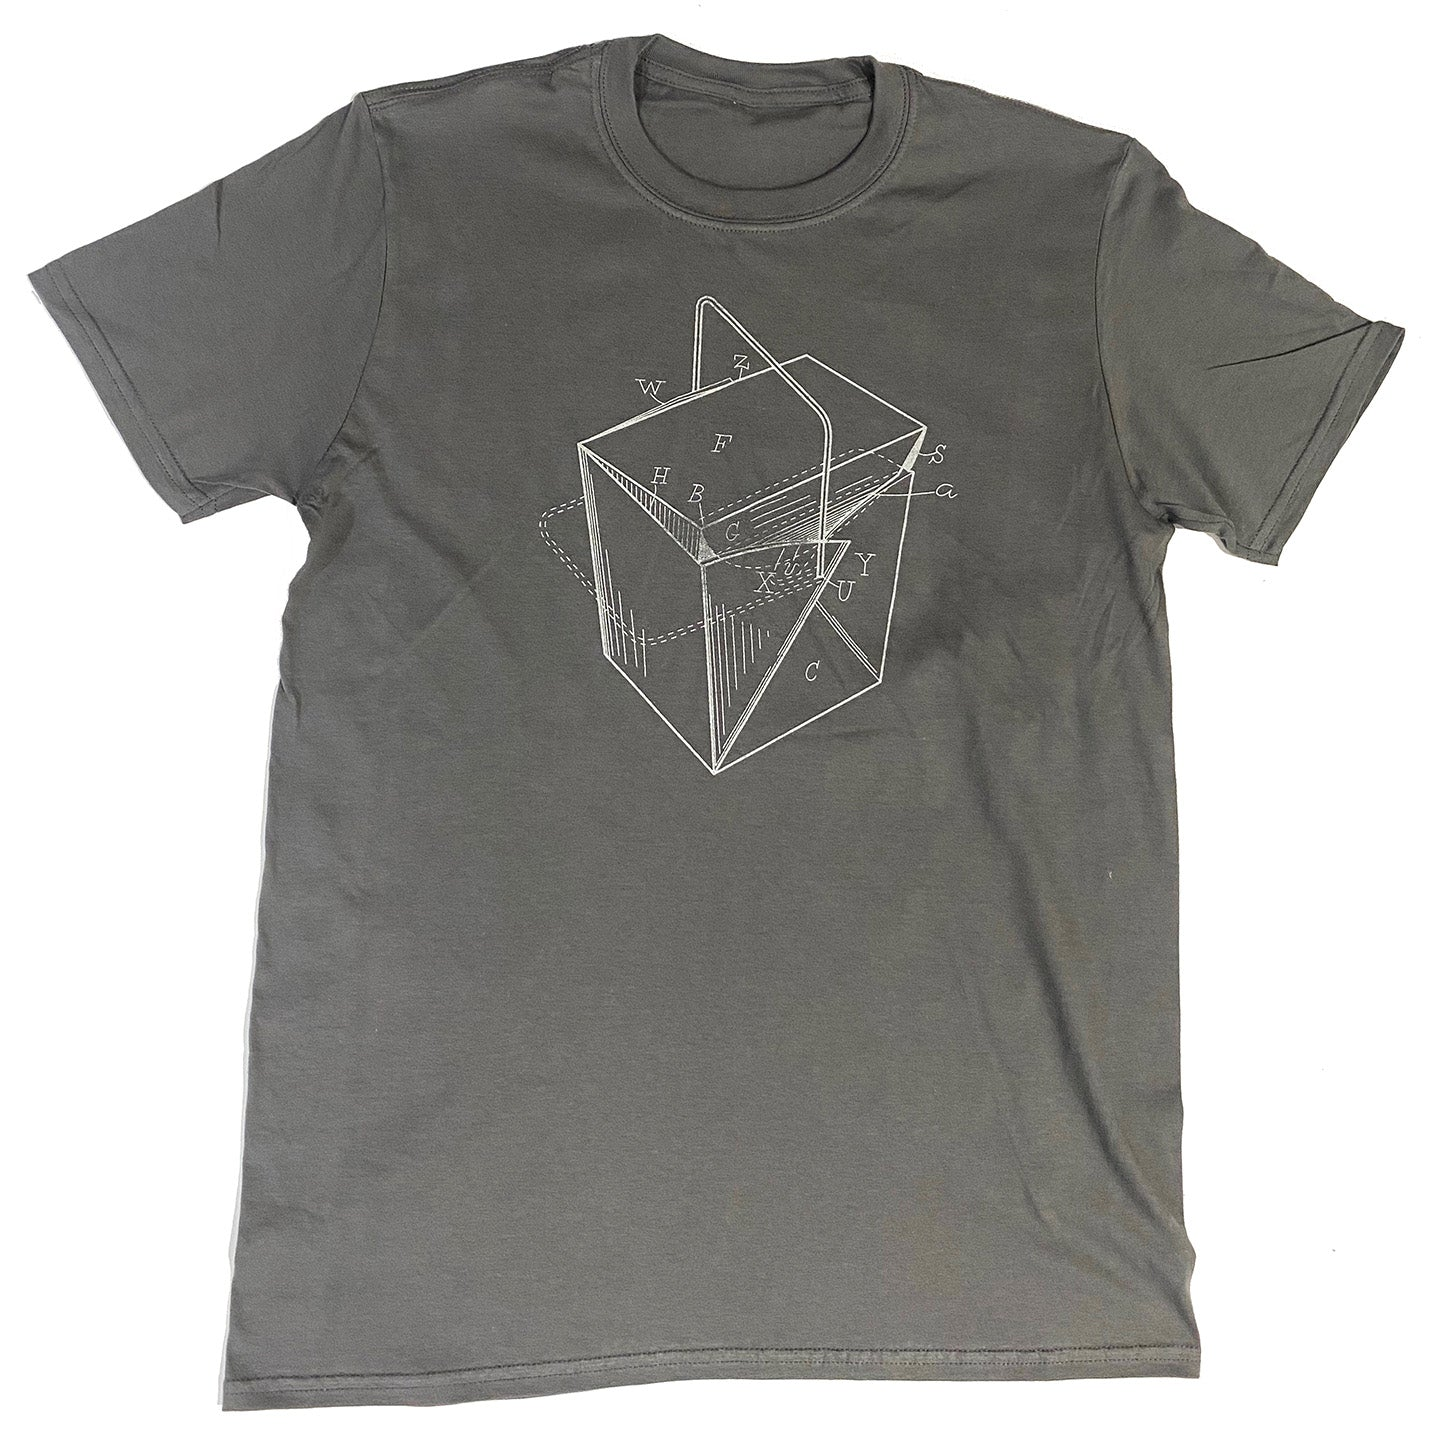 Take-Out Container Patent T-Shirt - Charcoal with Metallic Silver Ink